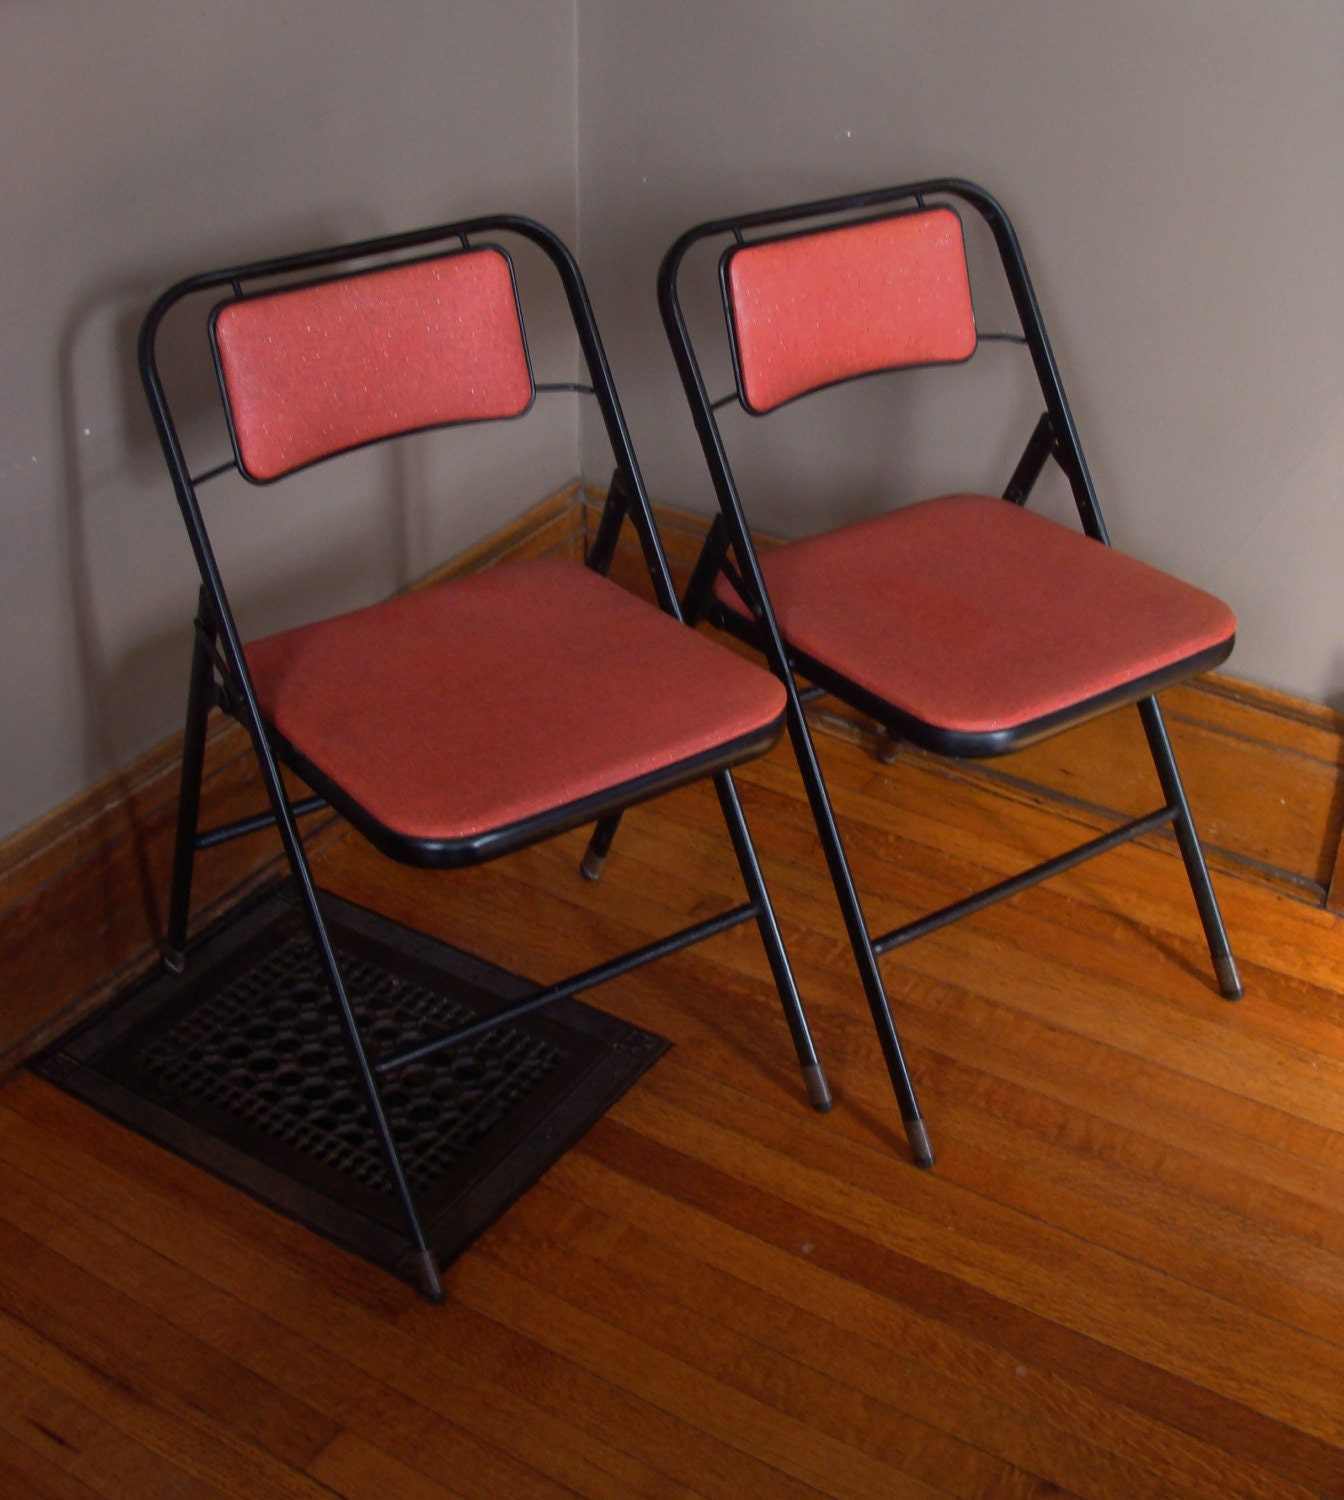 vintage metal folding chairs card table chairs by macandmarys